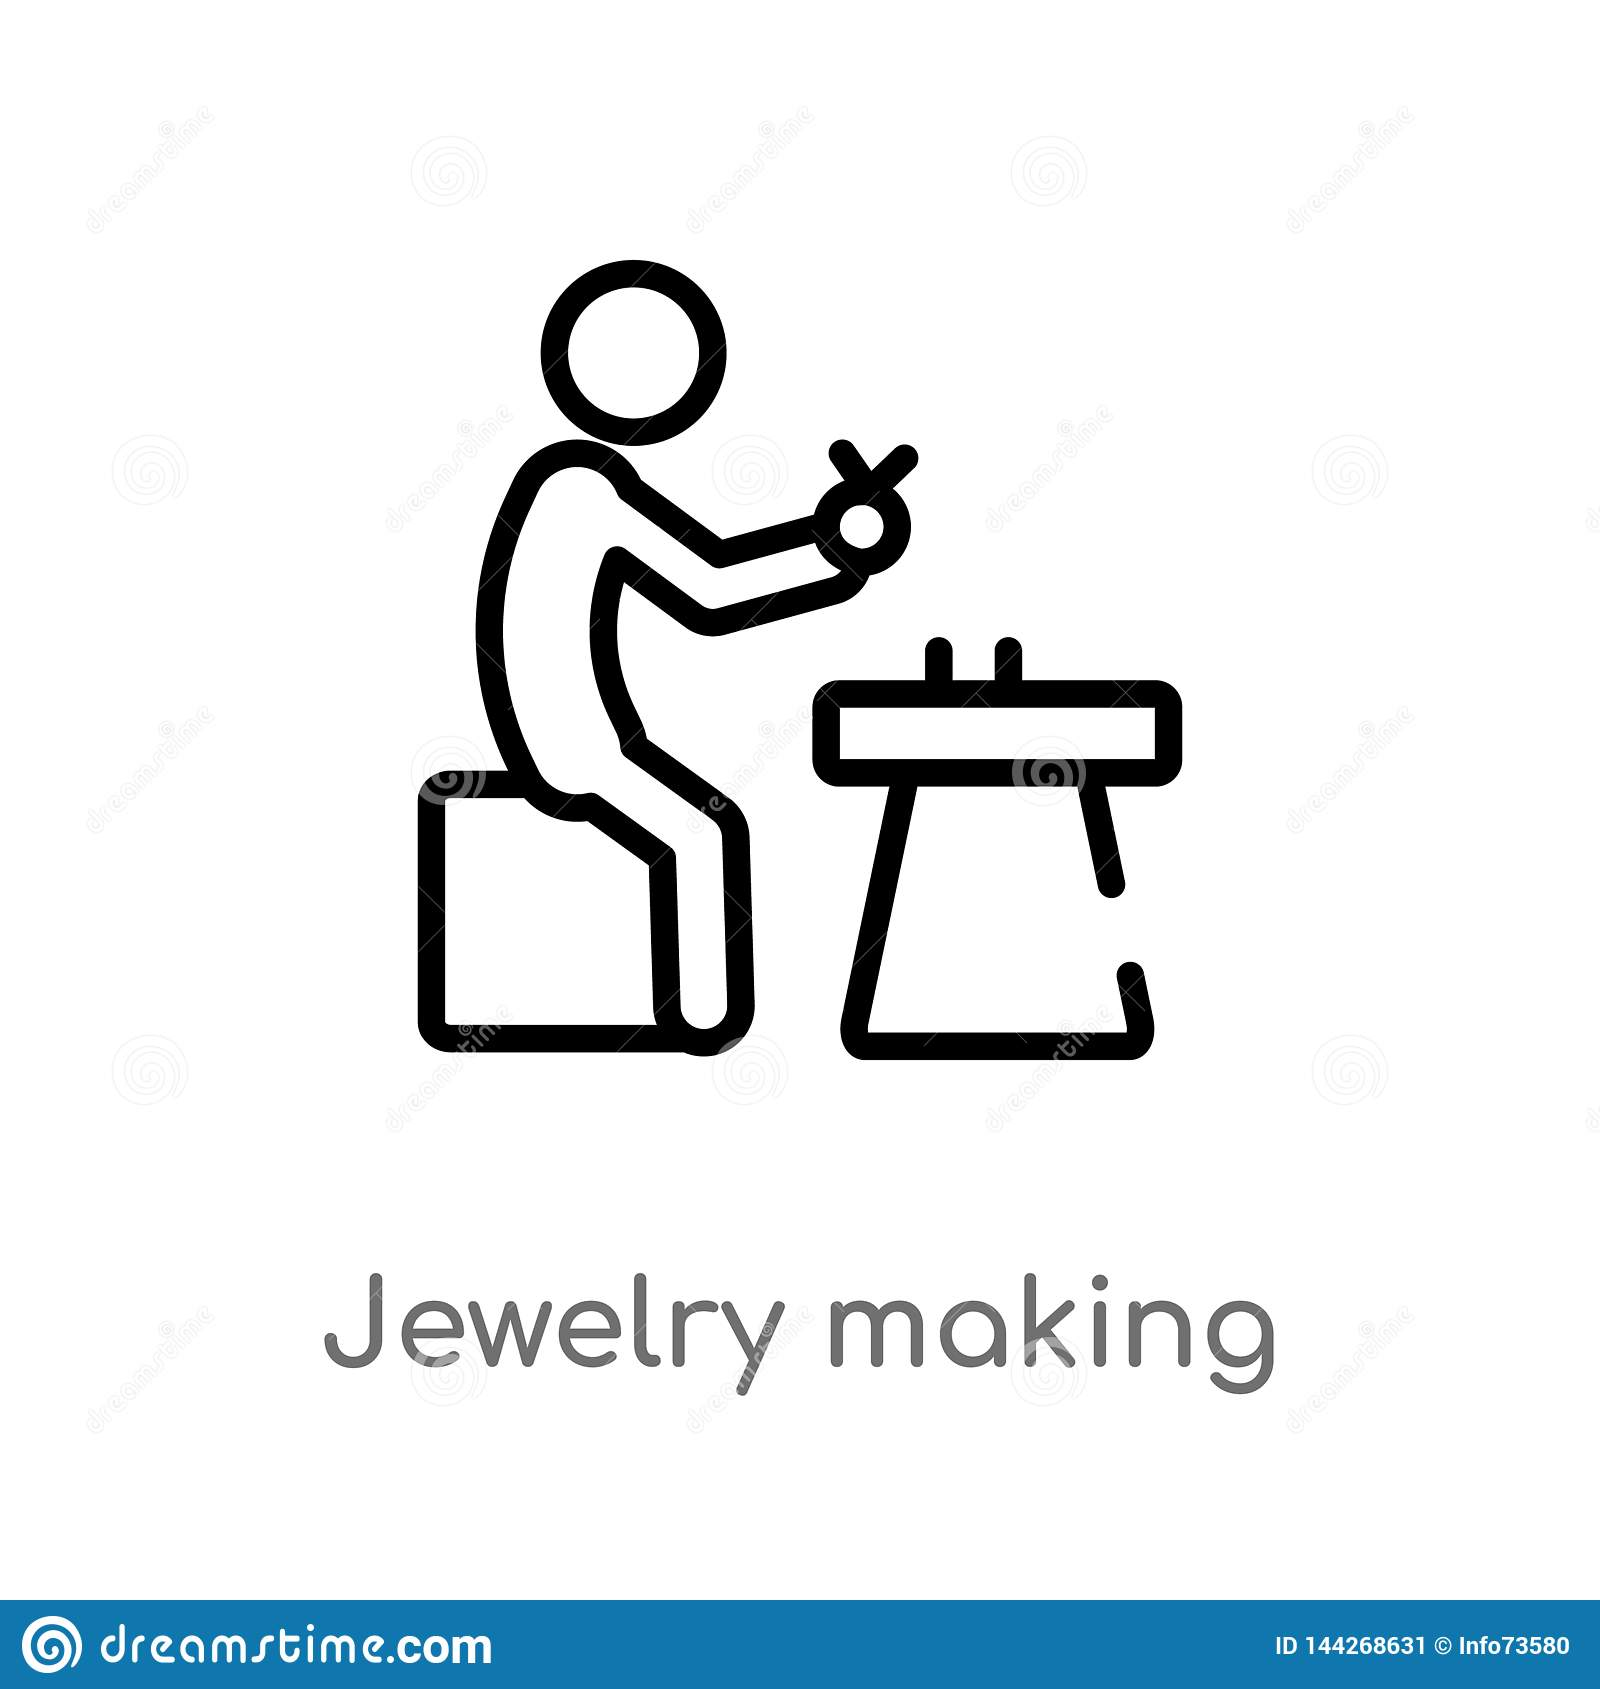 outline jewelry making vector icon. isolated black simple line element illustration from activity and hobbies concept. editable